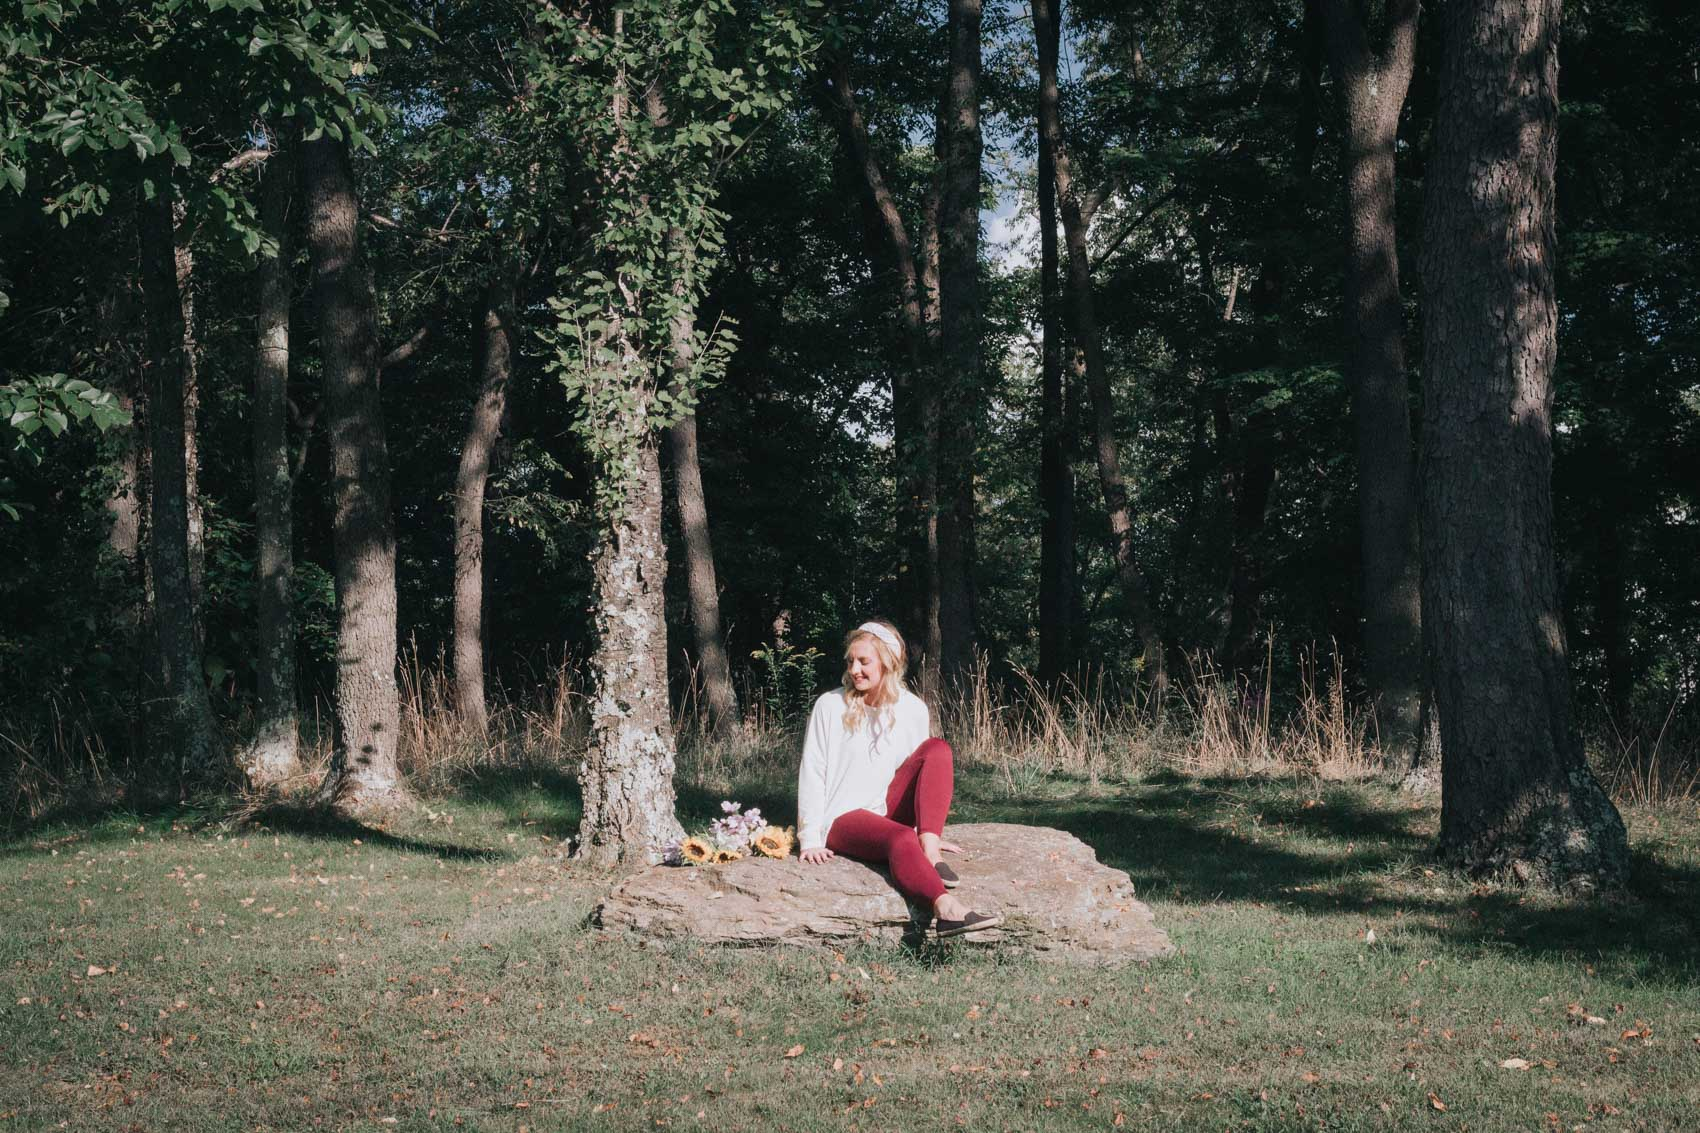 Lifestyle blogger, Allyn Lewis, explores Round Hill Park in Elizabeth, PA wearing a cozy fall outfit from Aerie (featuring the most comfortable leggings!).